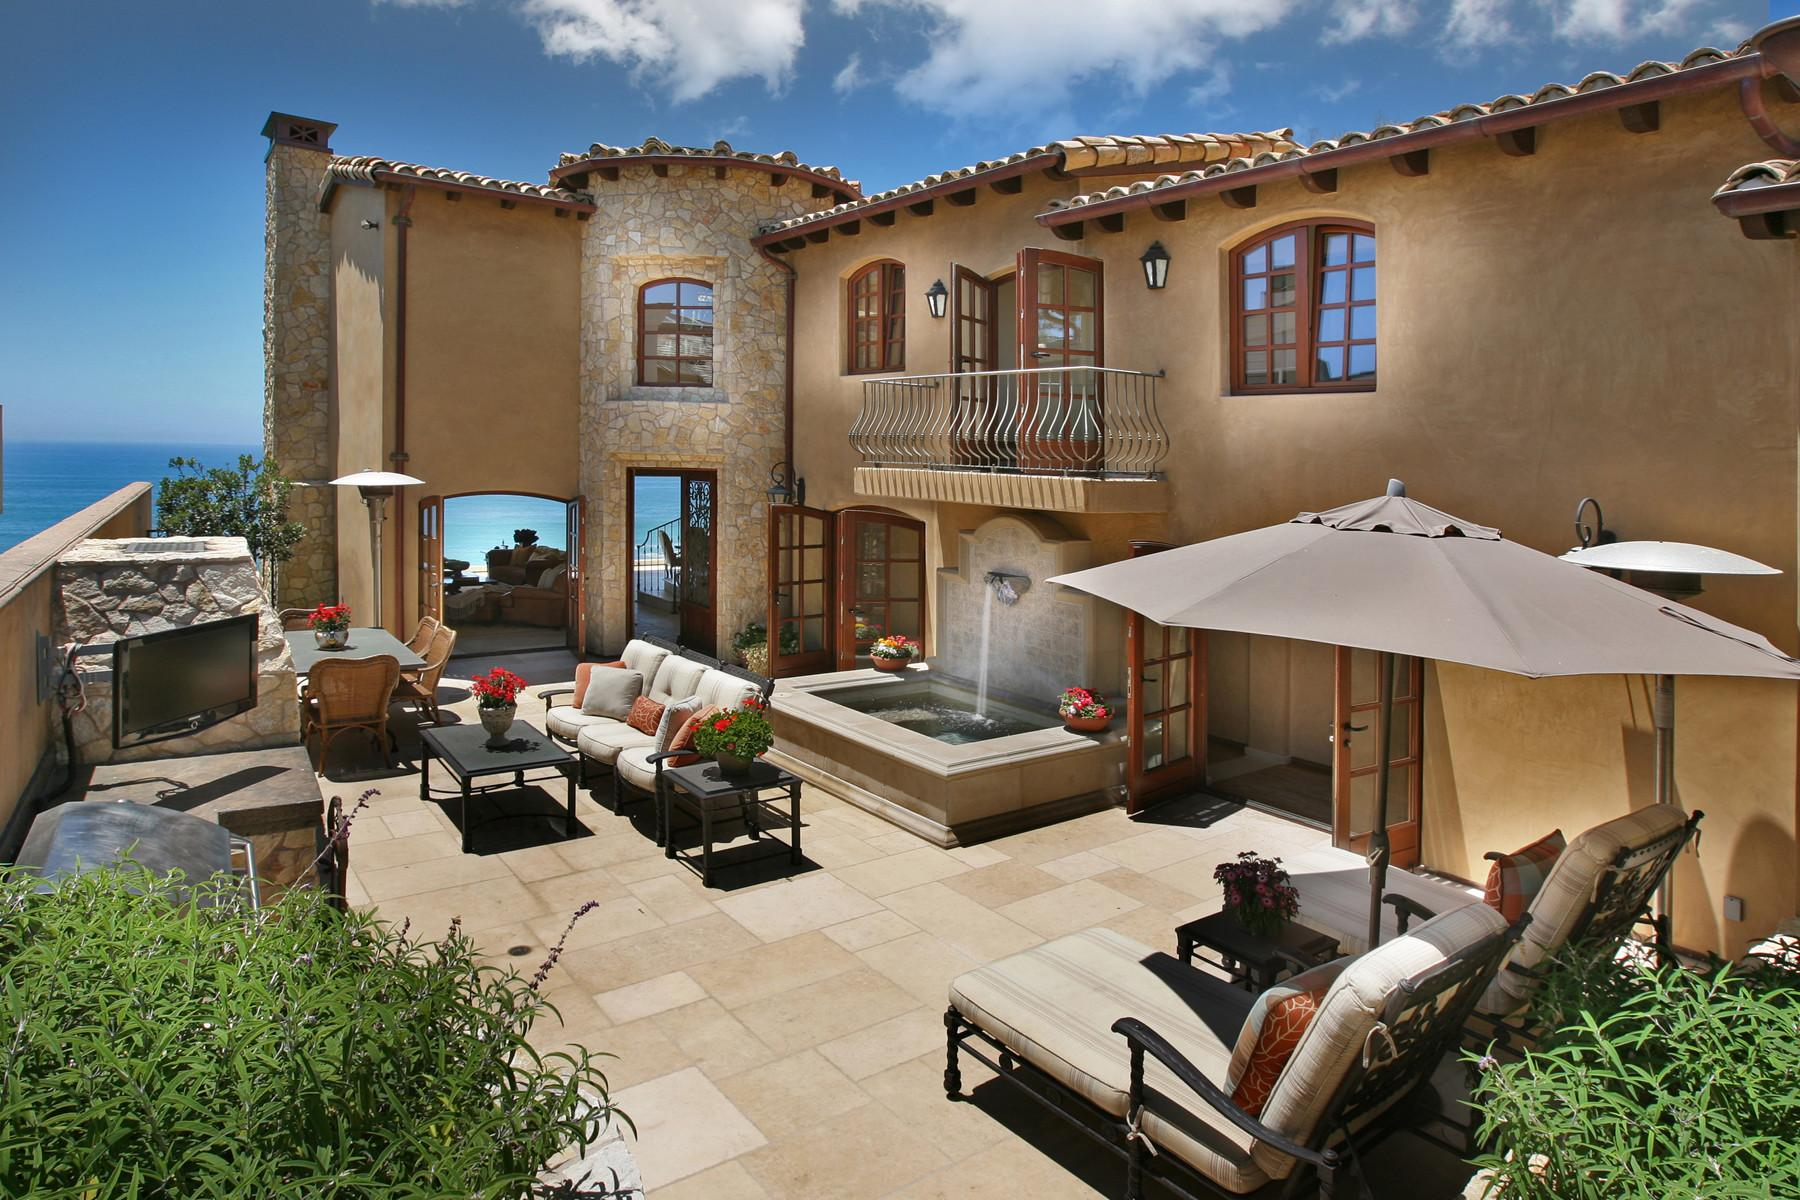 House Awesome Exterior Stone Wall Ideas Make